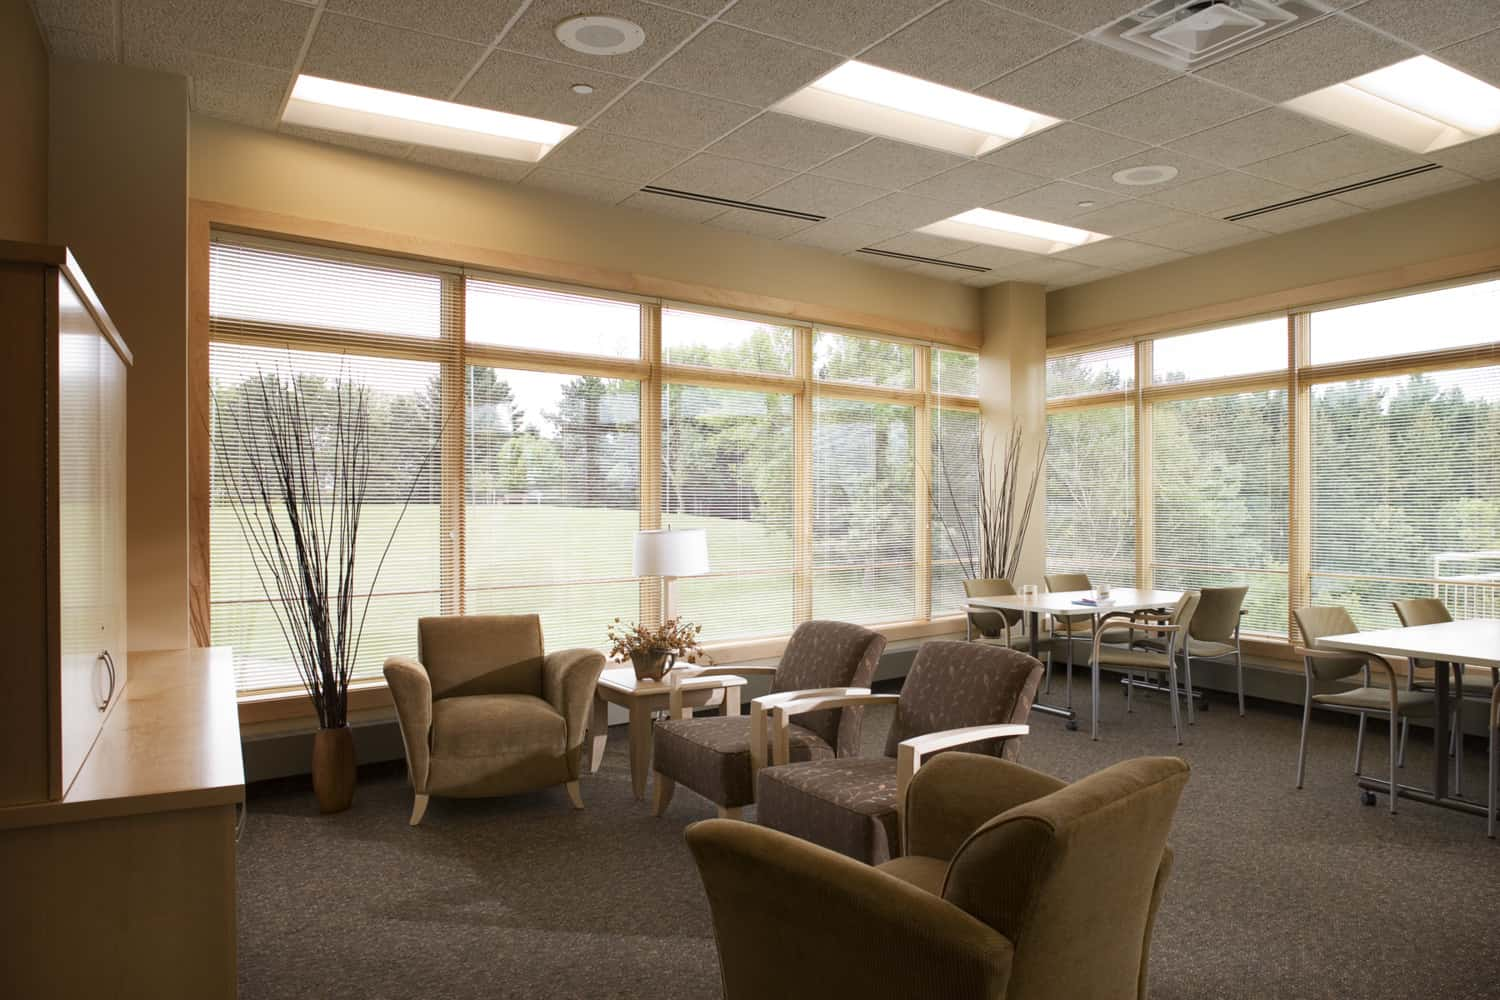 HAZELDEN FOUNDATION WOMEN'S RECOVERY CENTER